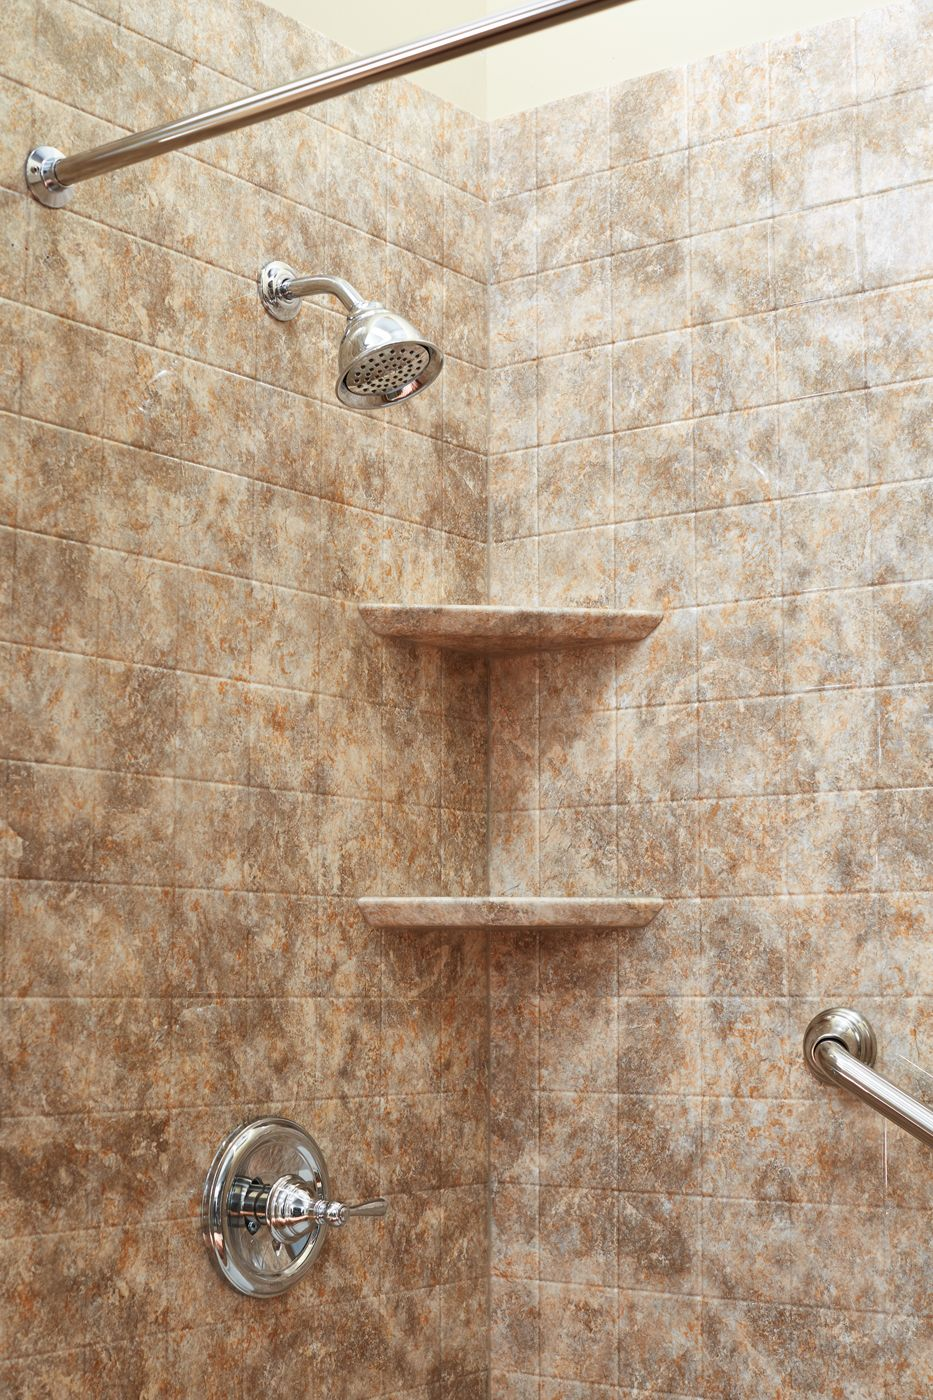 Its All About The Details With Our Copper Ridge Bath Wraps Enjoy - Bath wraps bathroom remodeling cost